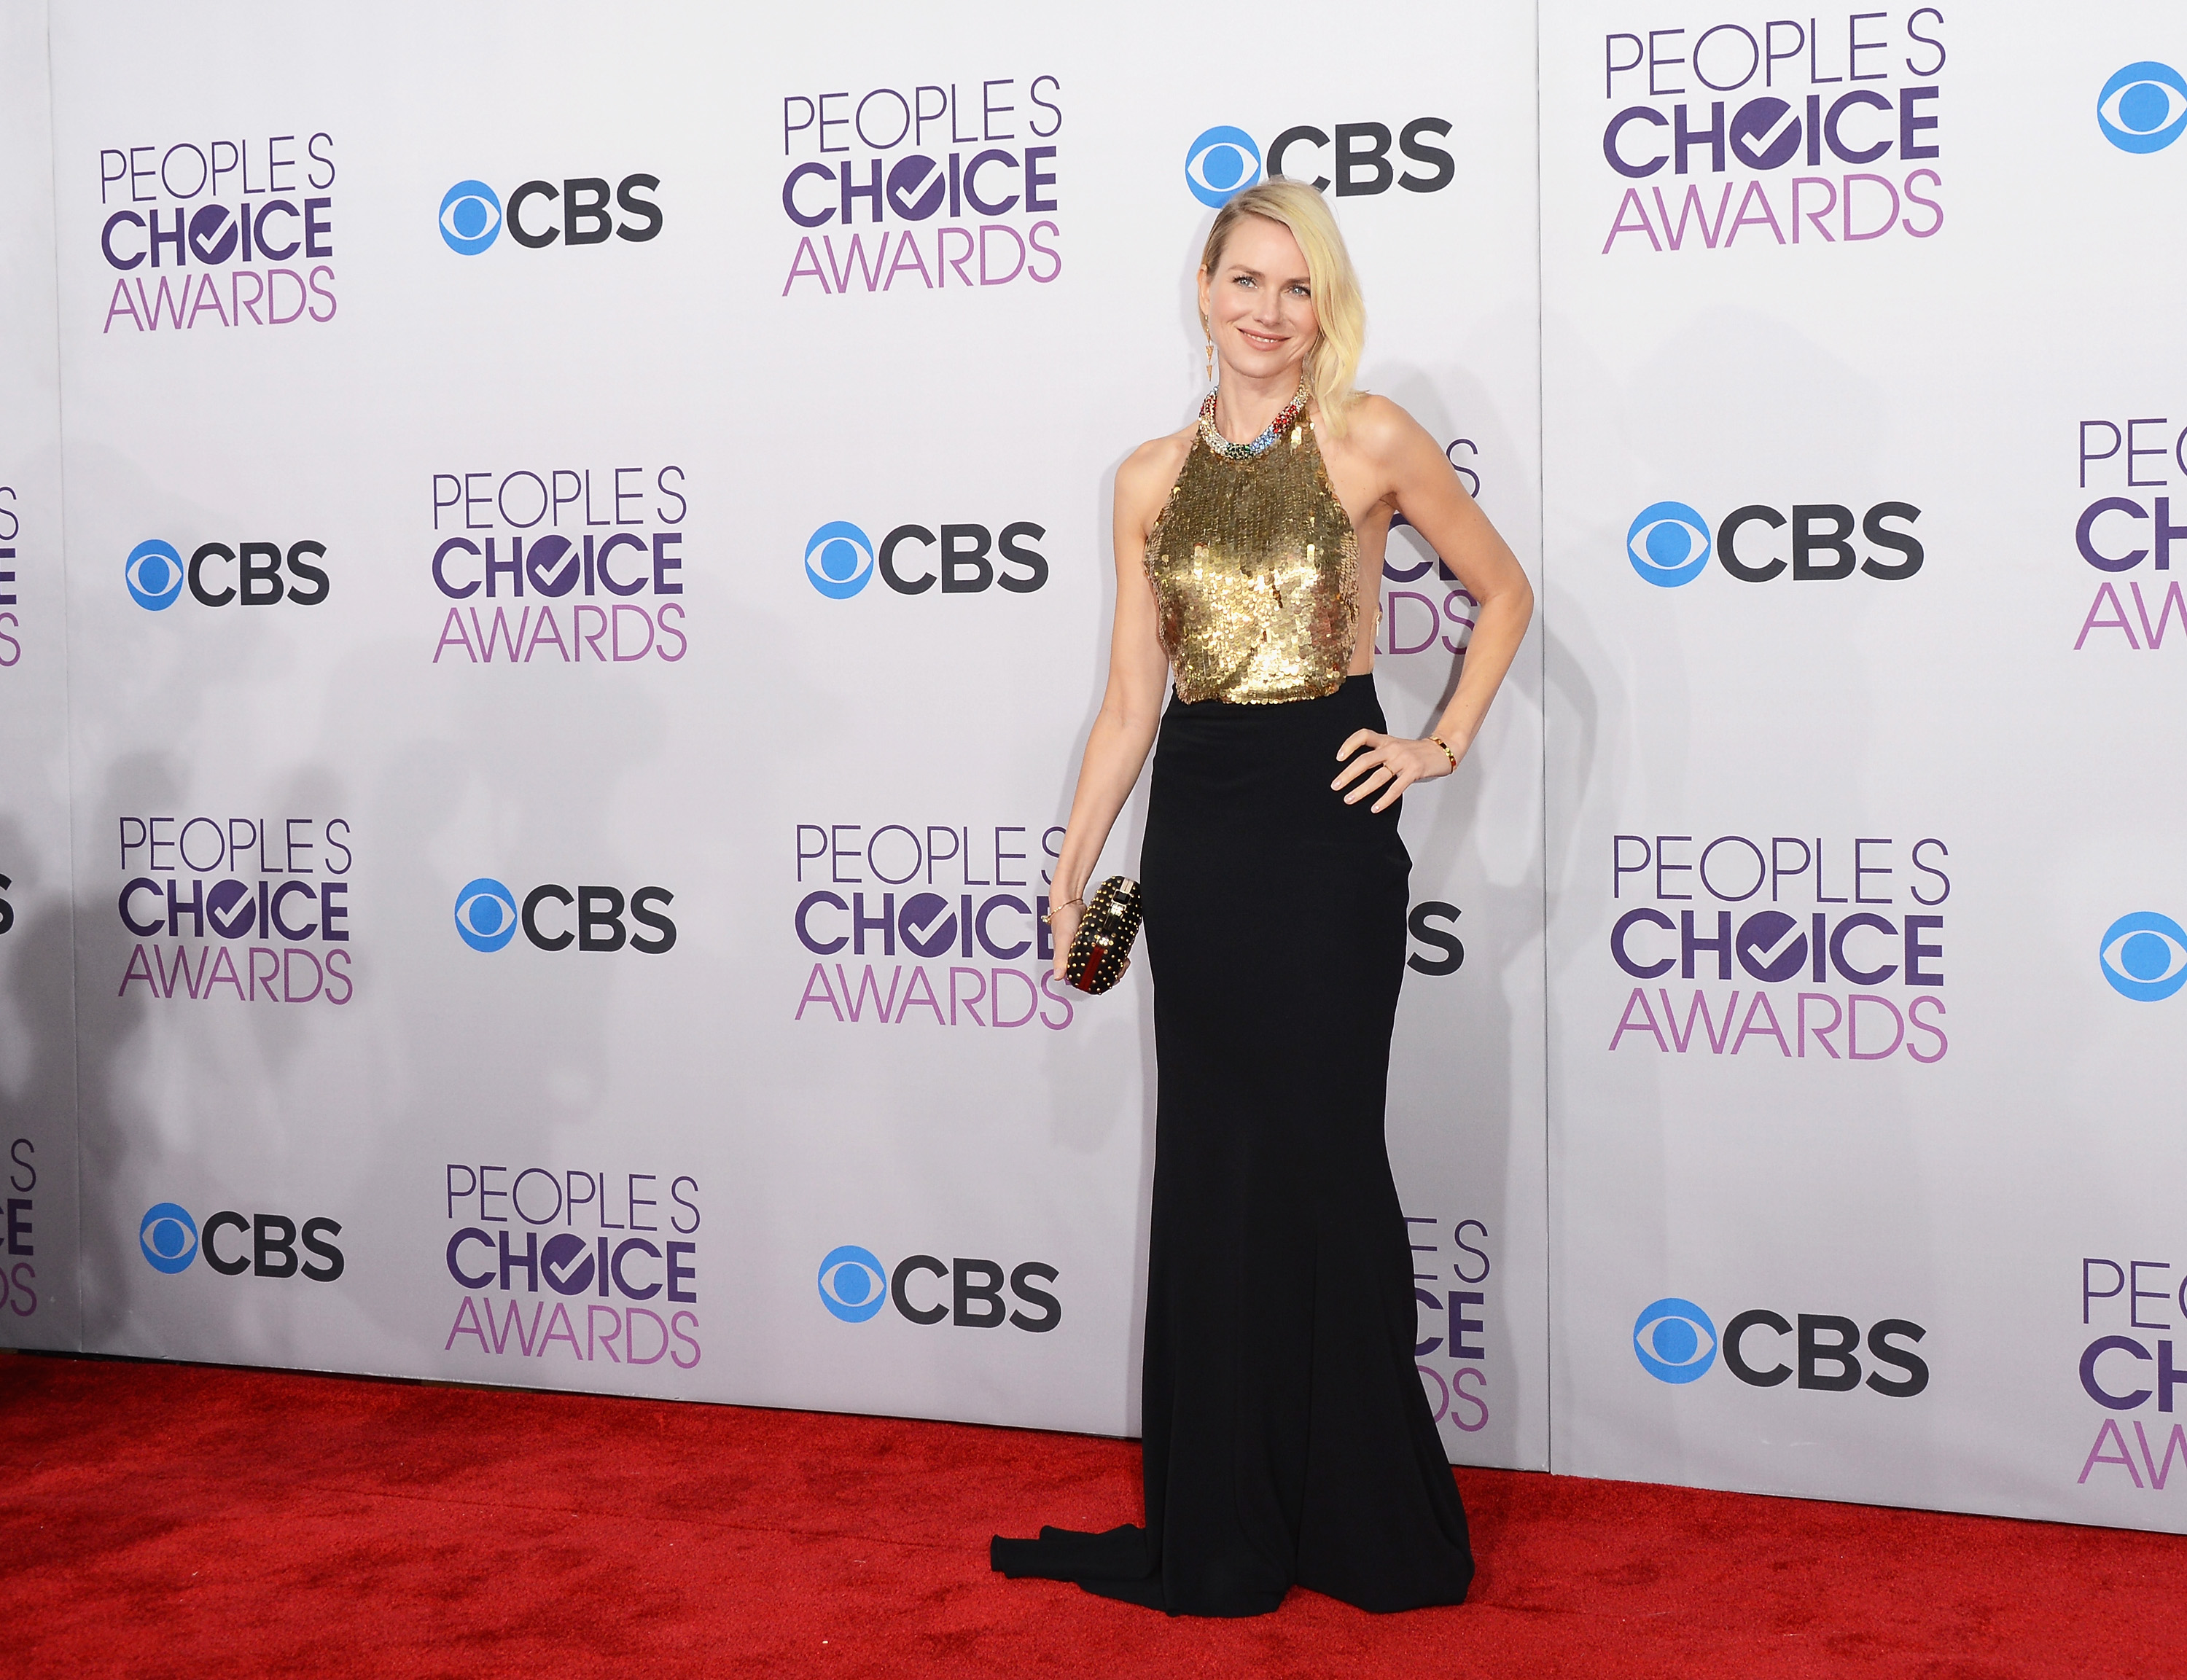 Naomi Watts looked stunning in a Alexander McQueen gown on the red carpet.